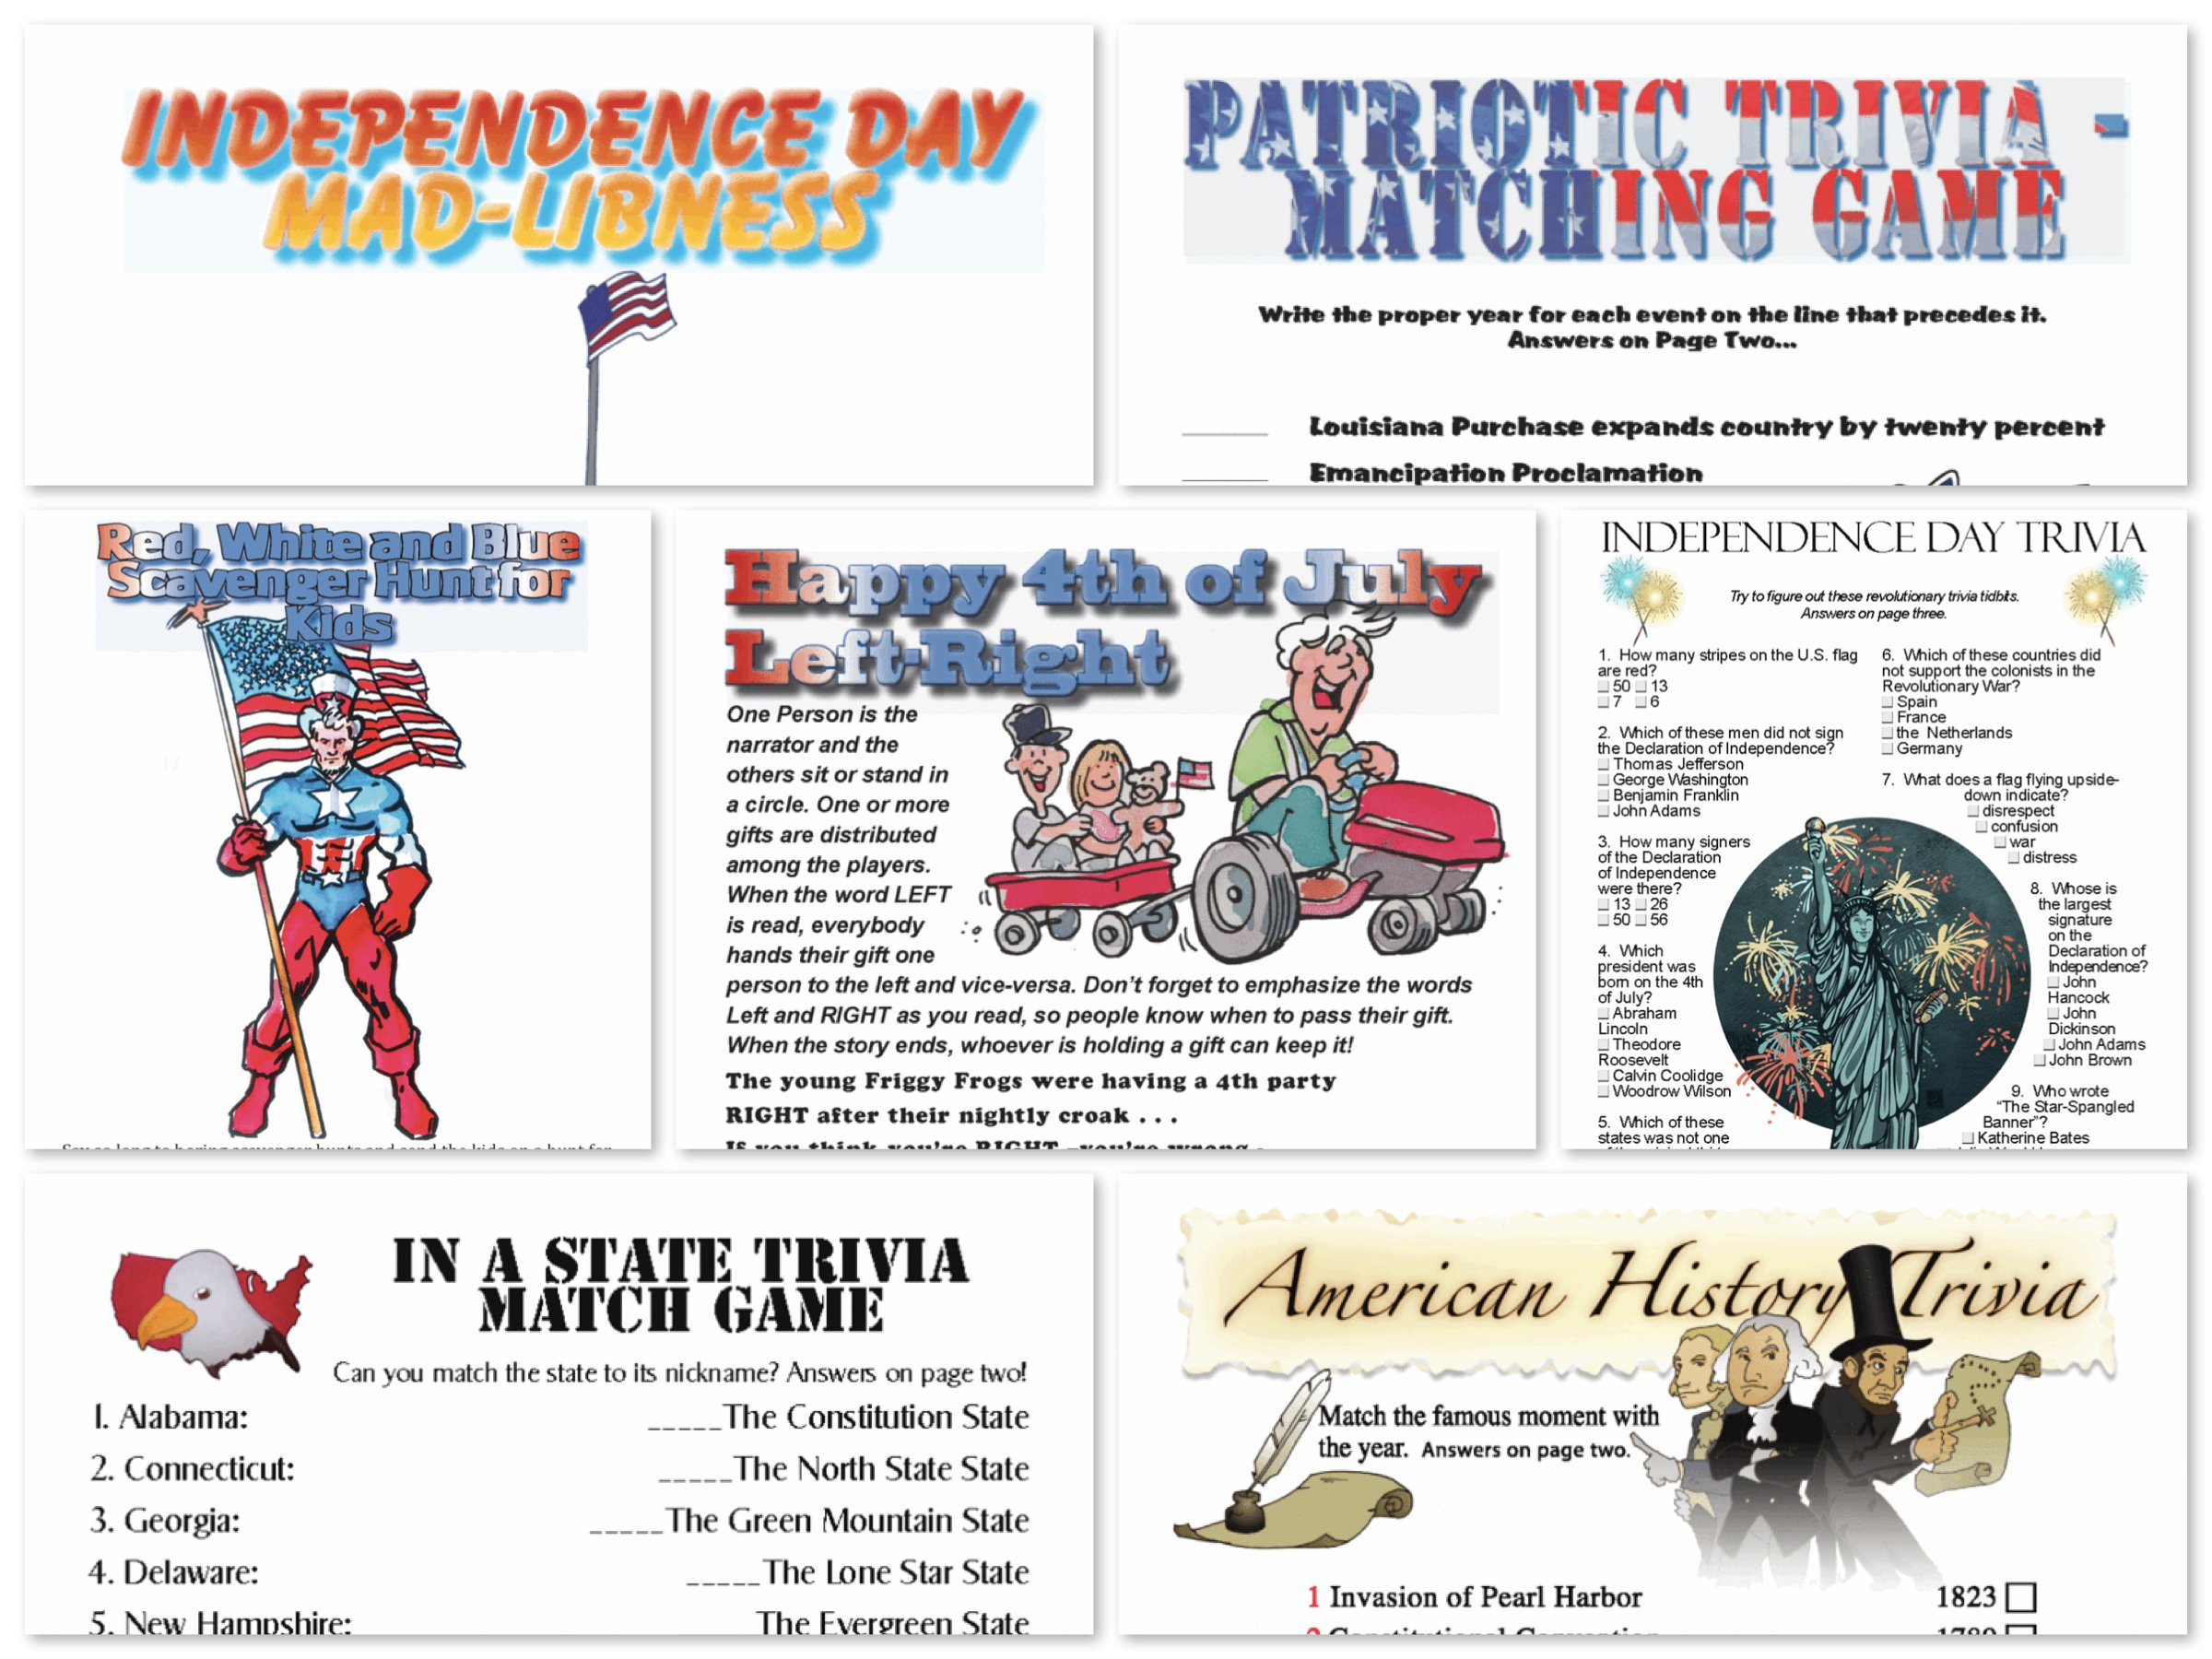 image regarding 4th of July Trivia Printable identify Patriotic Get together Creating, Plans Resources 4th of July